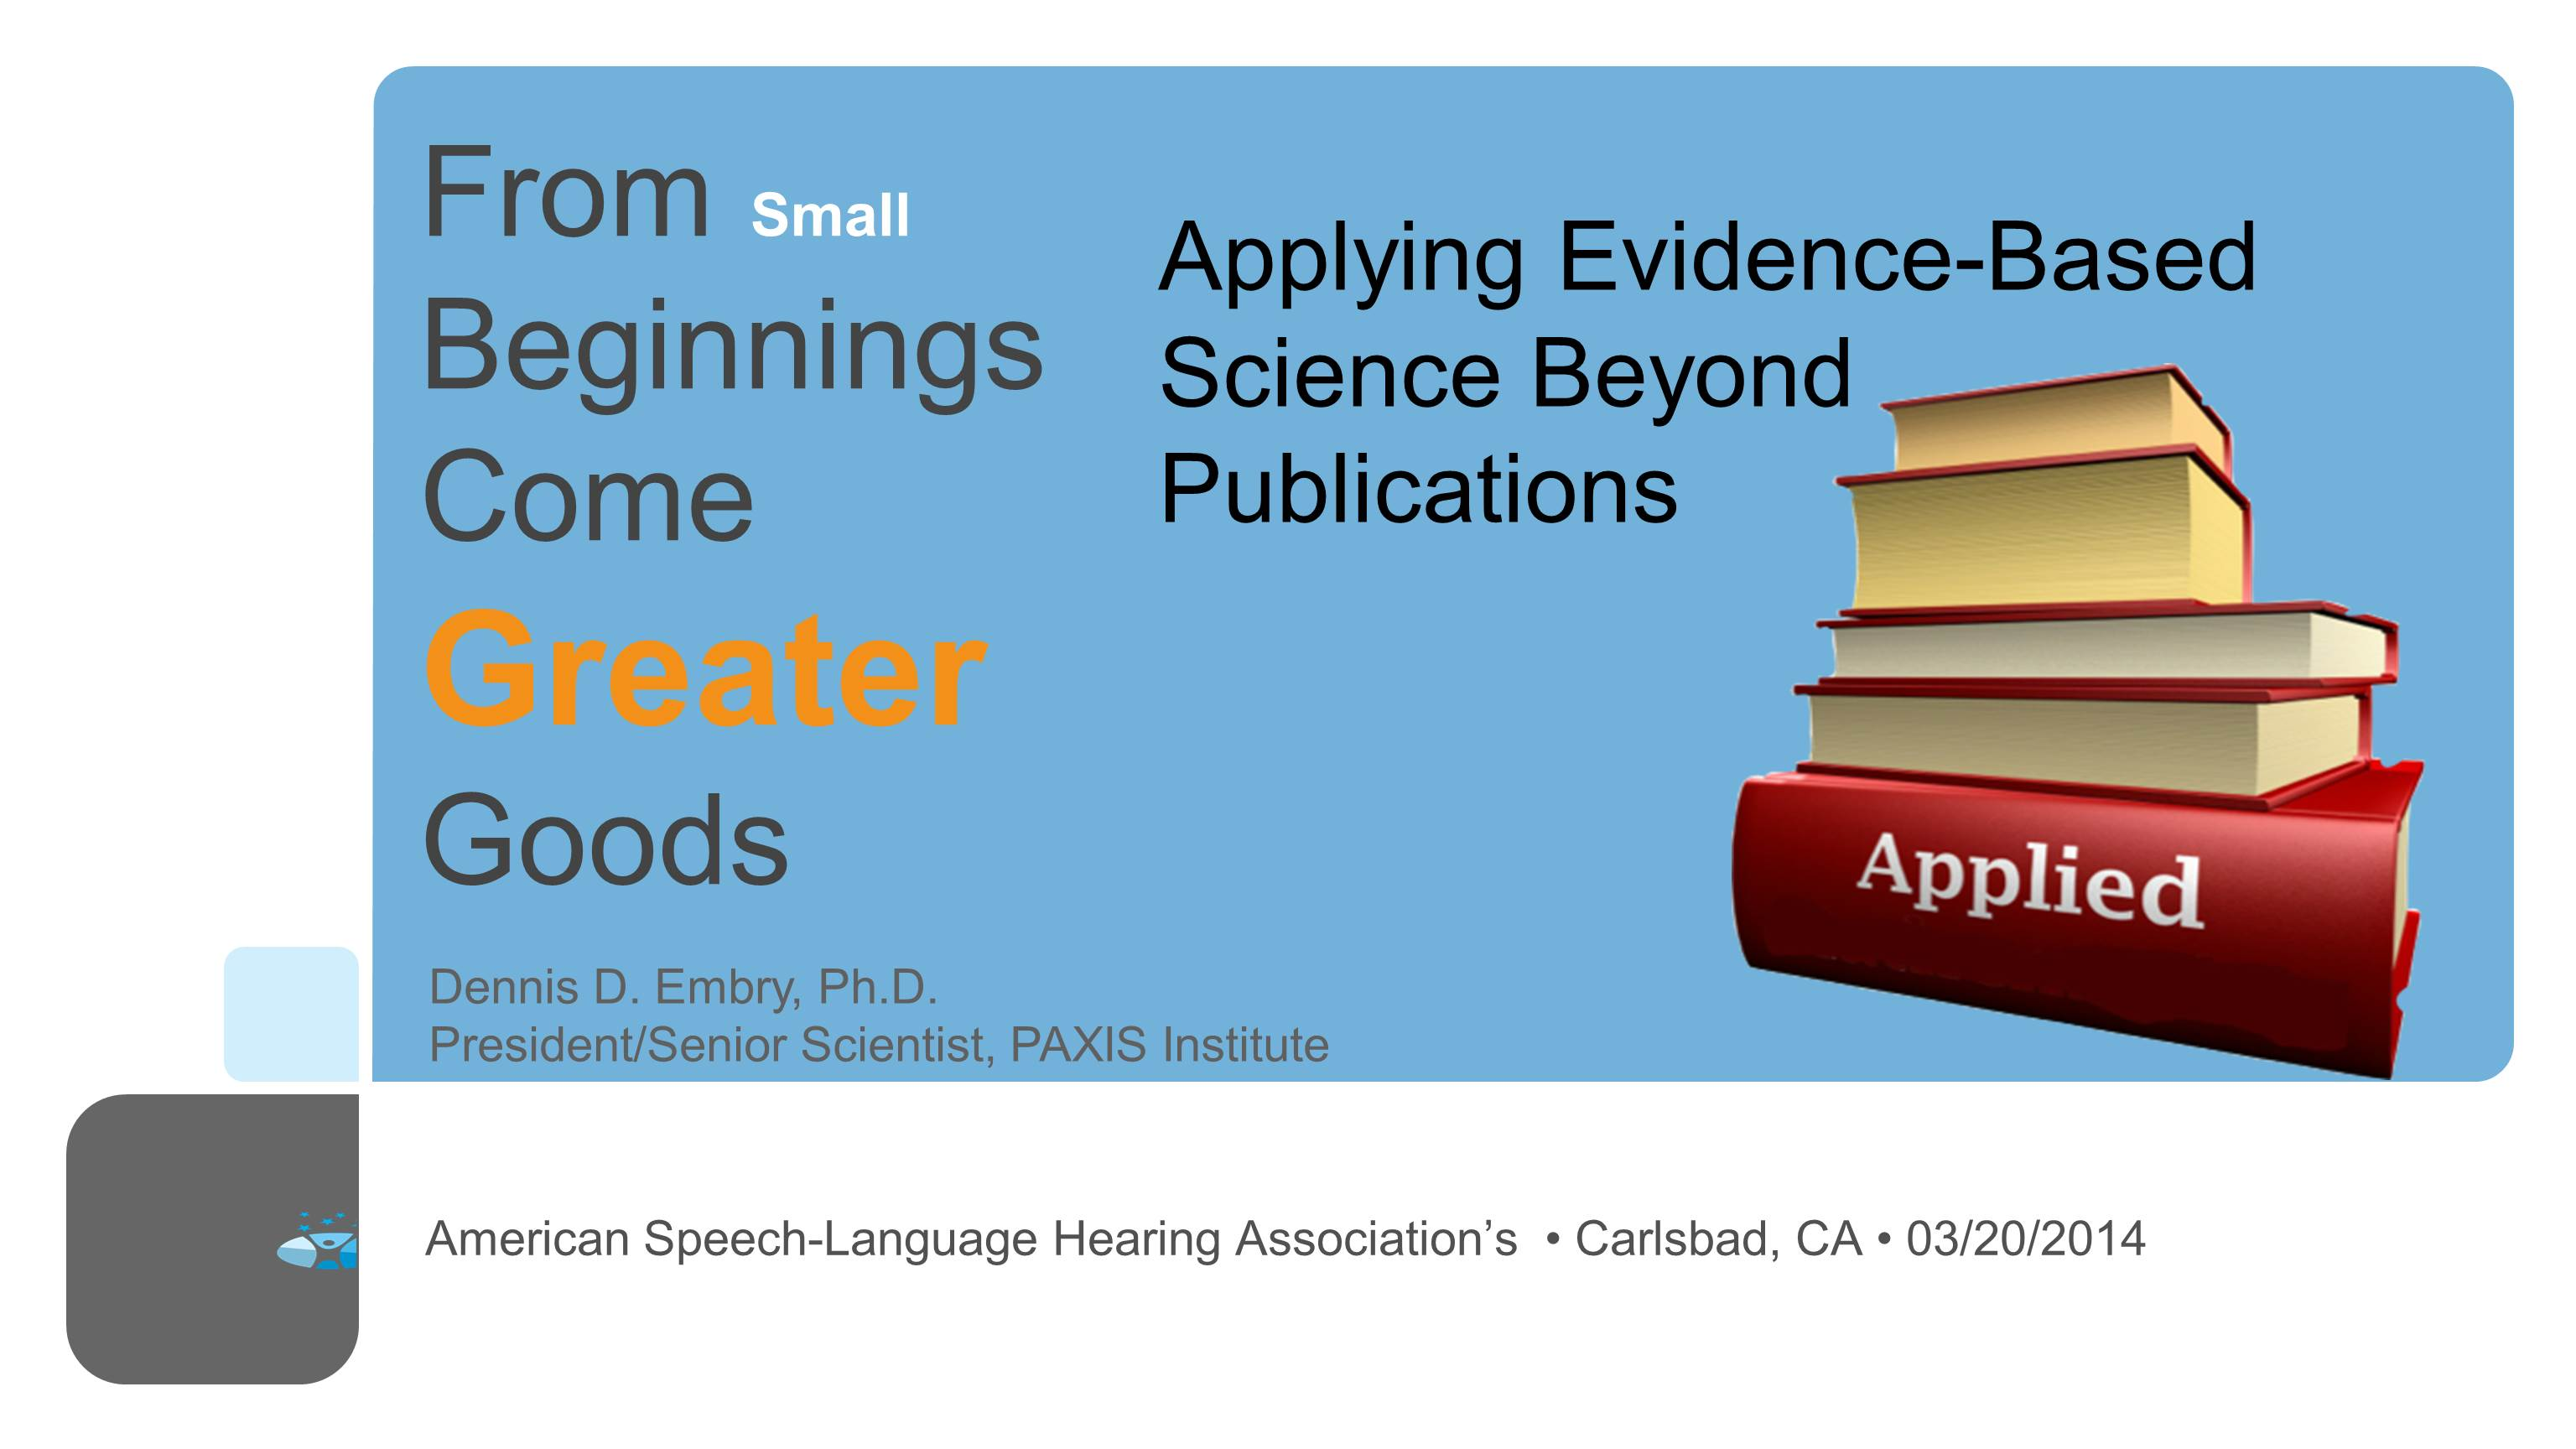 From Small Beginnings Come Greater Goods: Applying Evidence